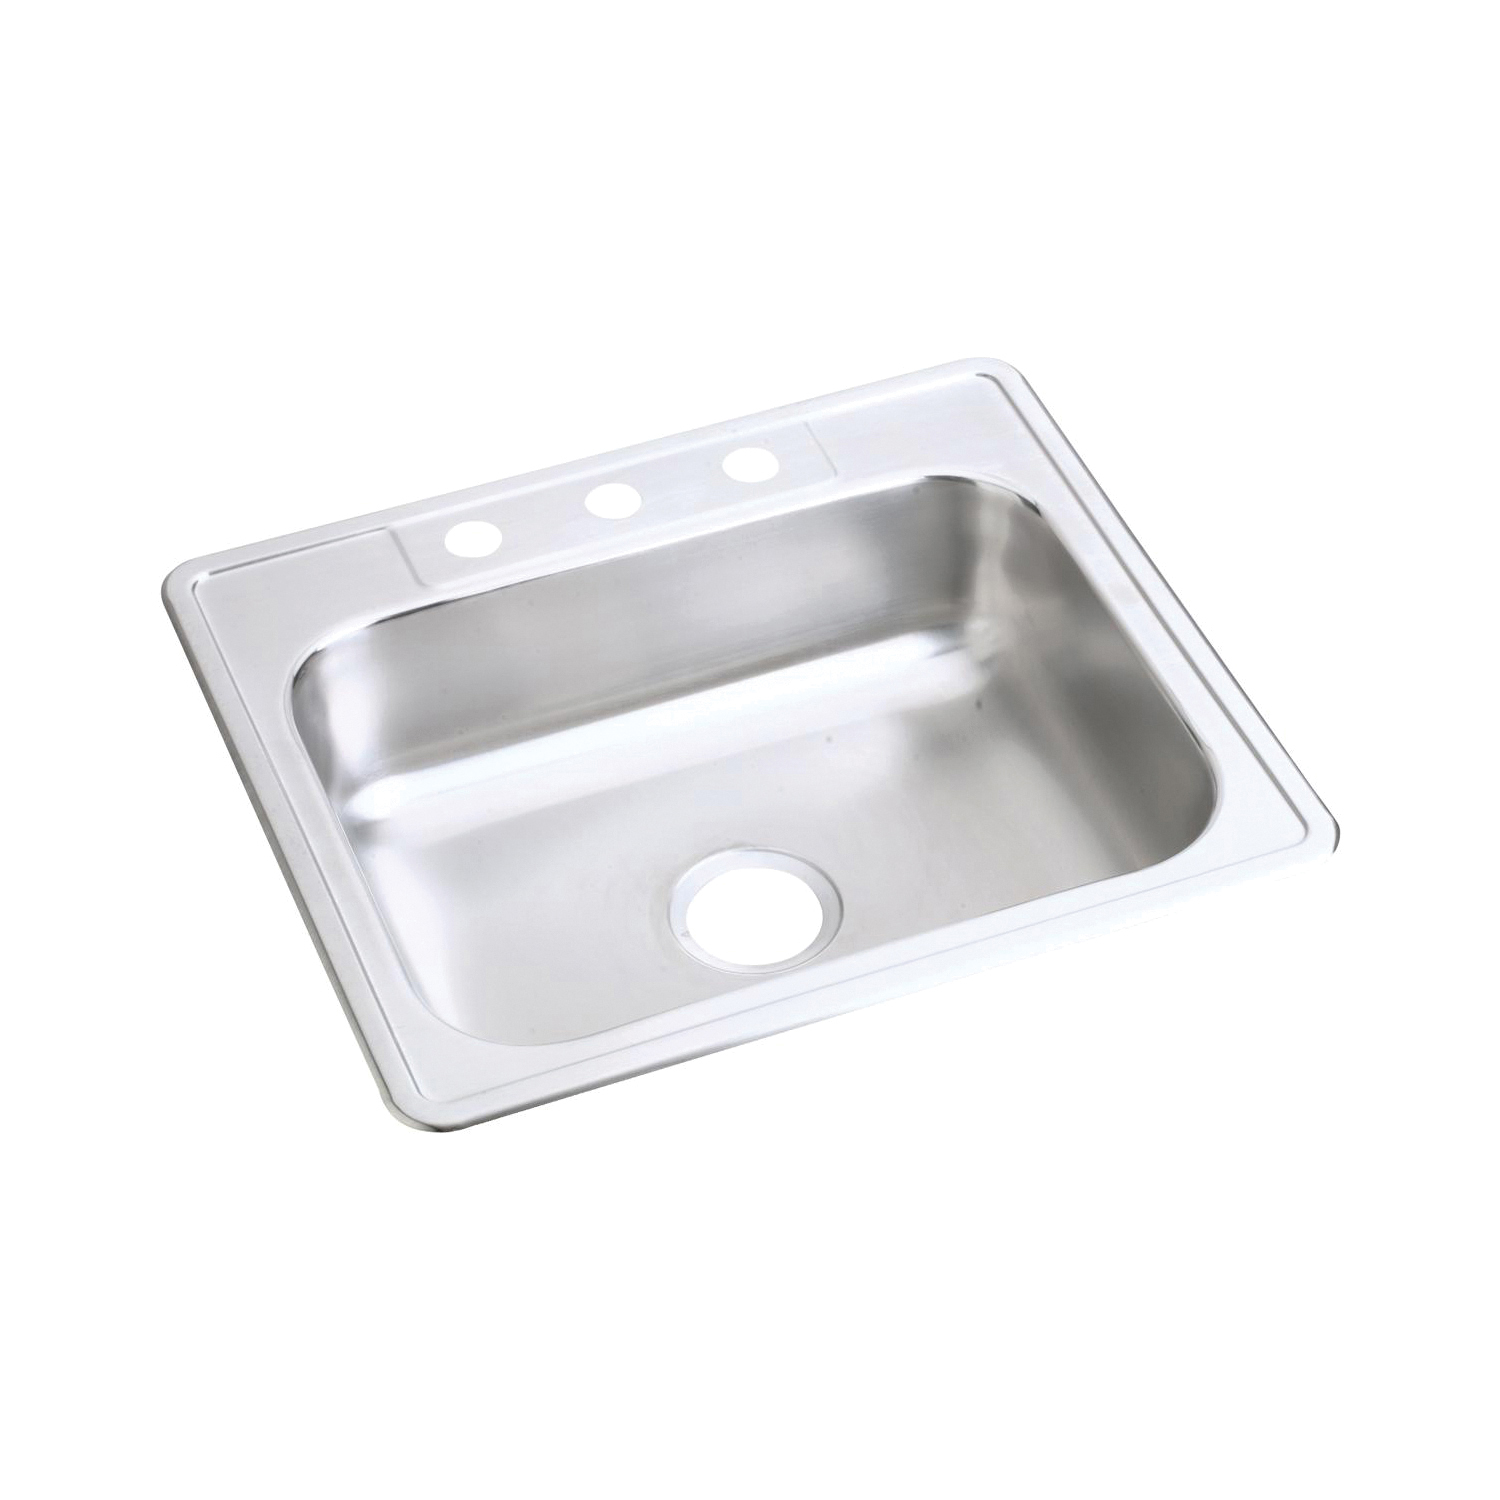 Elkay® D125223 Dayton® Kitchen Sink, Rectangular, 3 Faucet Holes, 25 in W x 22 in D x 6-9/16 in H, Top Mount, Stainless Steel, Satin, Domestic